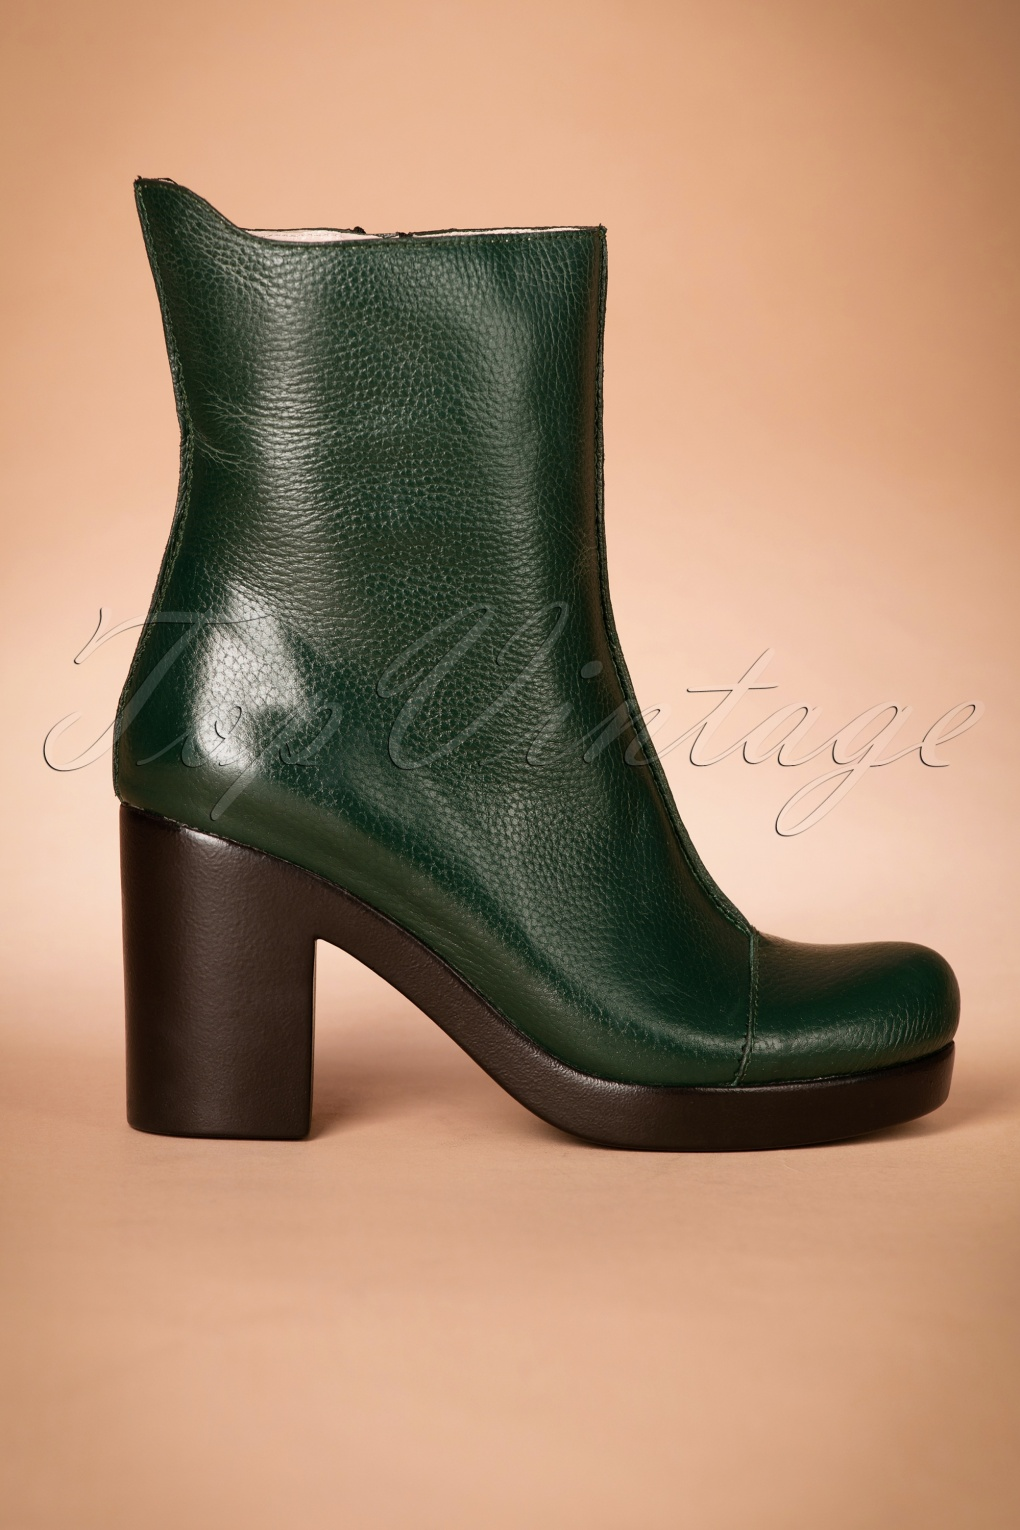 Retro Boots, Granny Boots, 70s Boots 70s Saker Lifestyle Booties in Green £151.06 AT vintagedancer.com